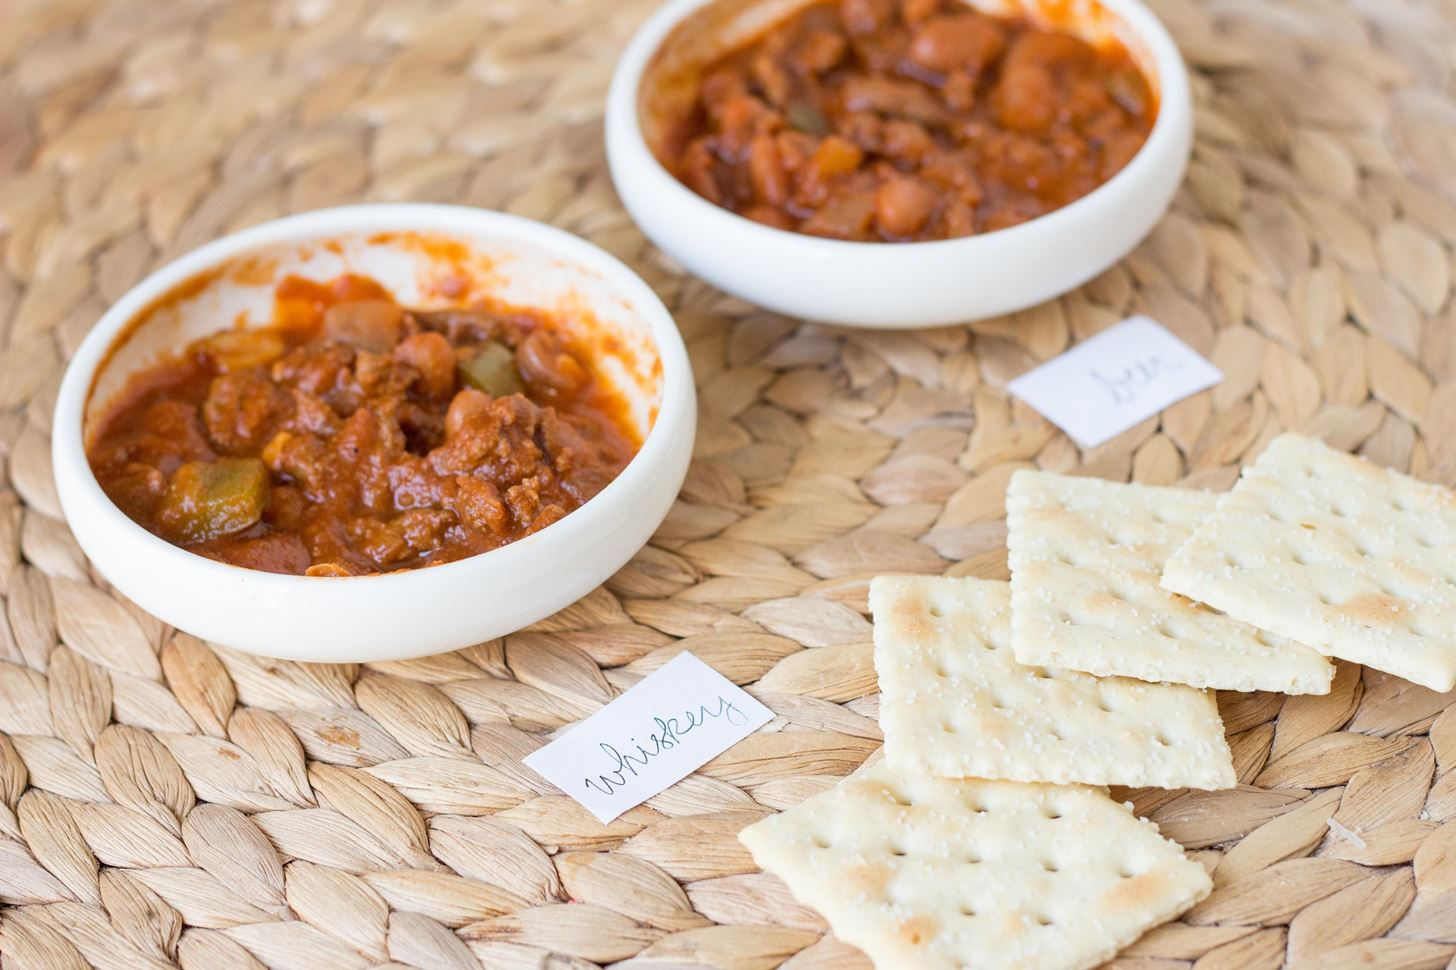 TESTED: 10 Secret & Bizarre Chili Ingredients—Here's the Best